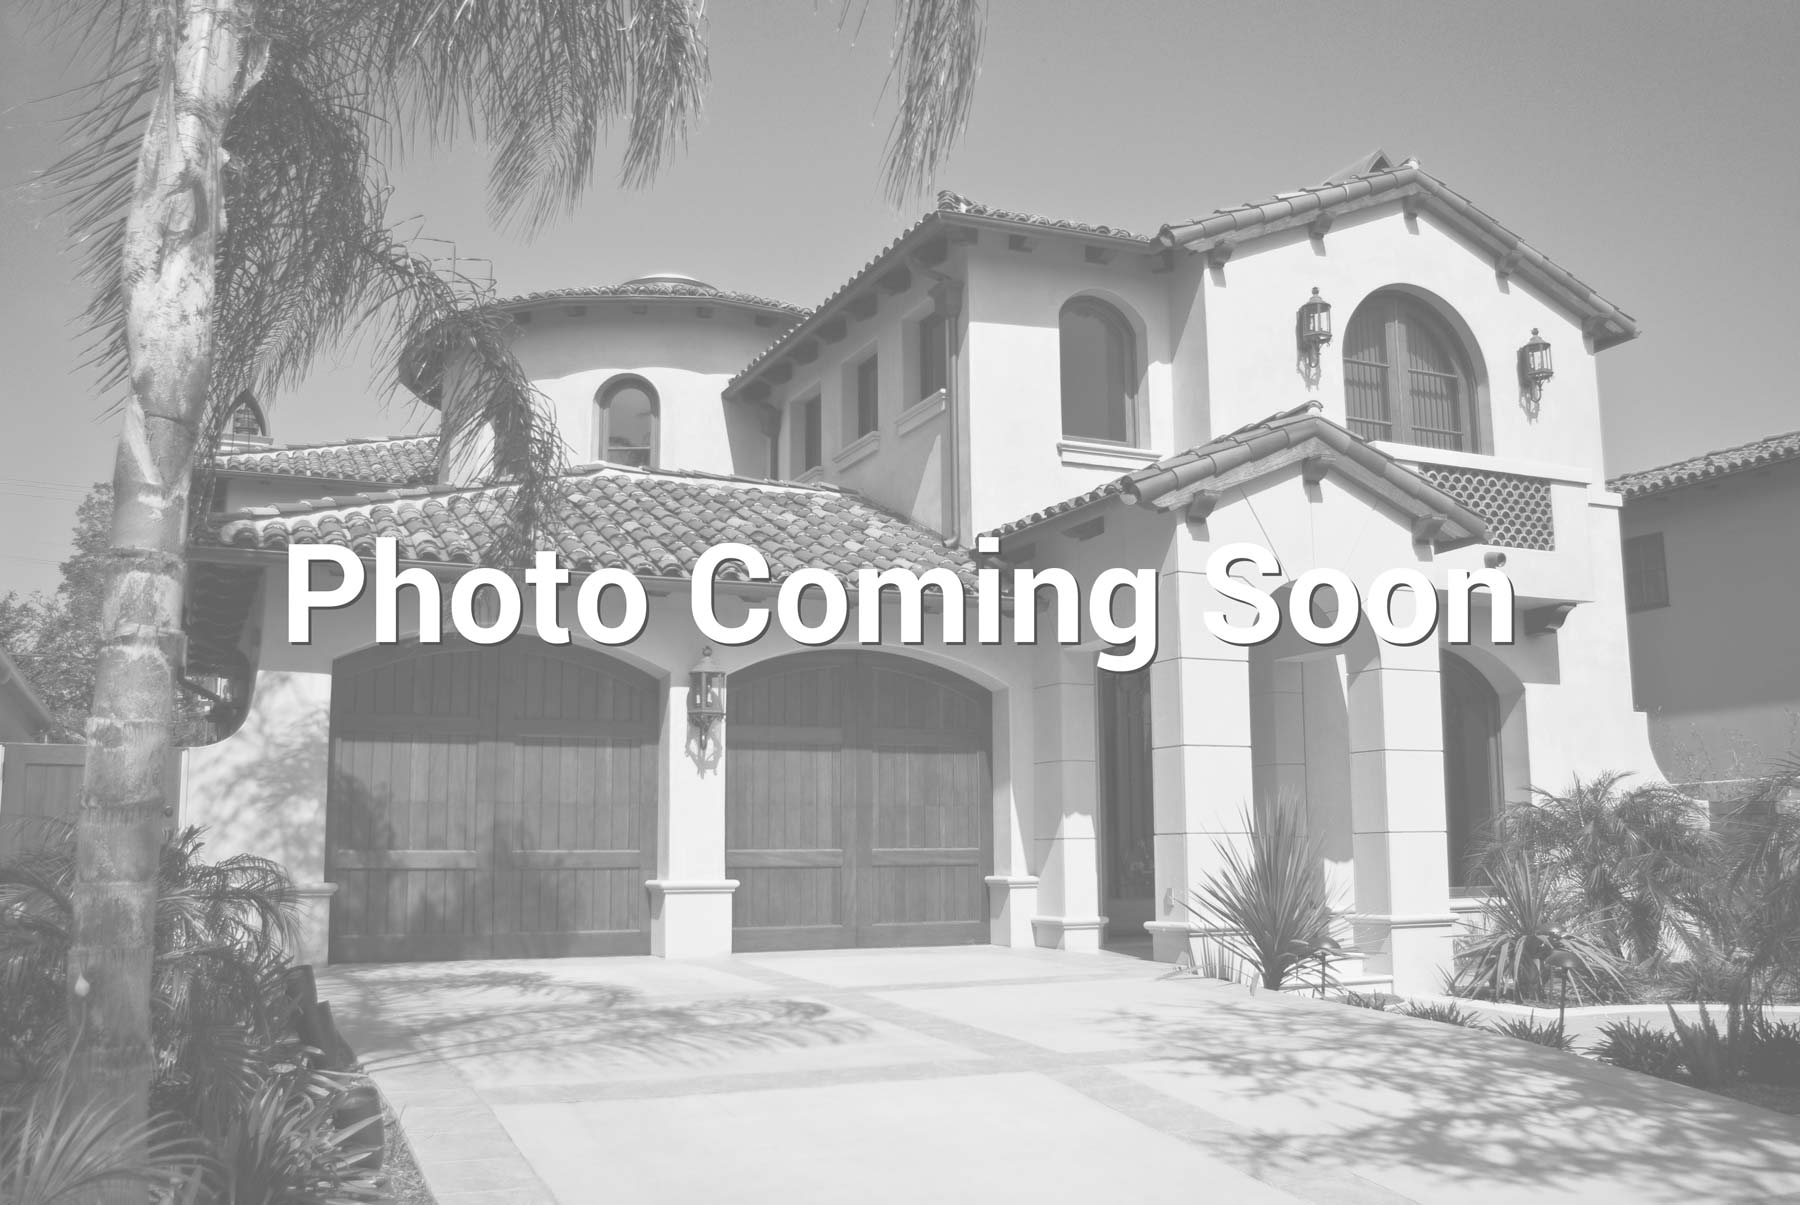 $1,274,500 - 4Br/3Ba -  for Sale in Mission Springs (ms), San Juan Capistrano